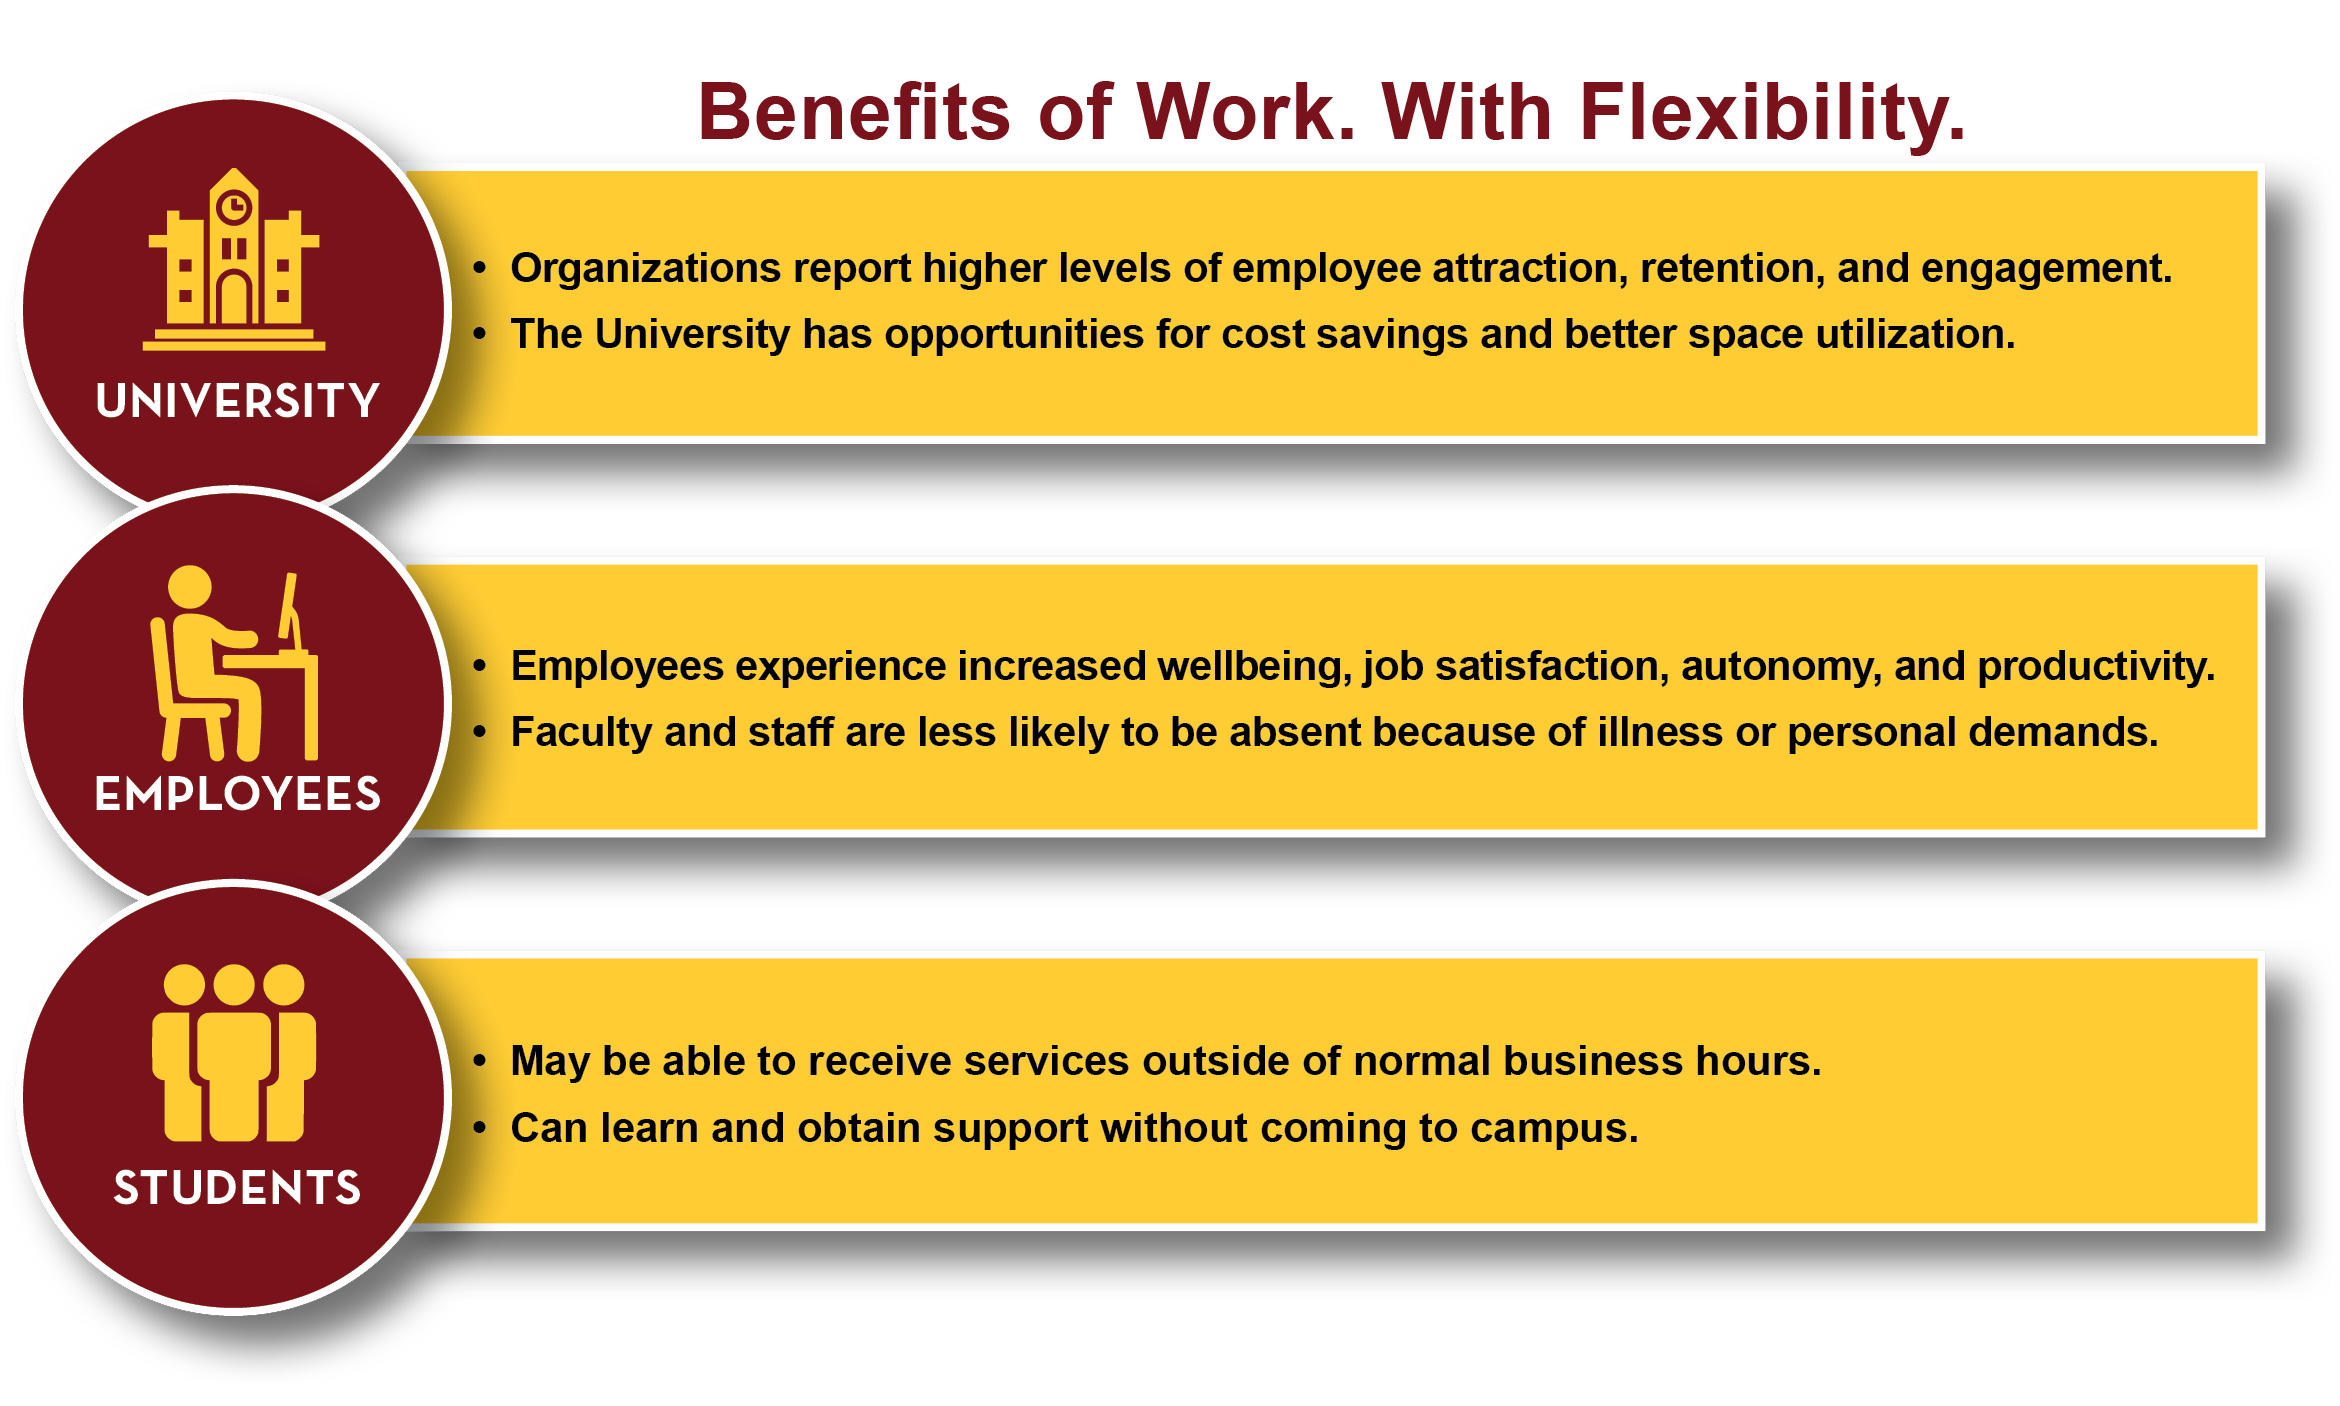 Benefits of workplace flexibility for the university, employees and students